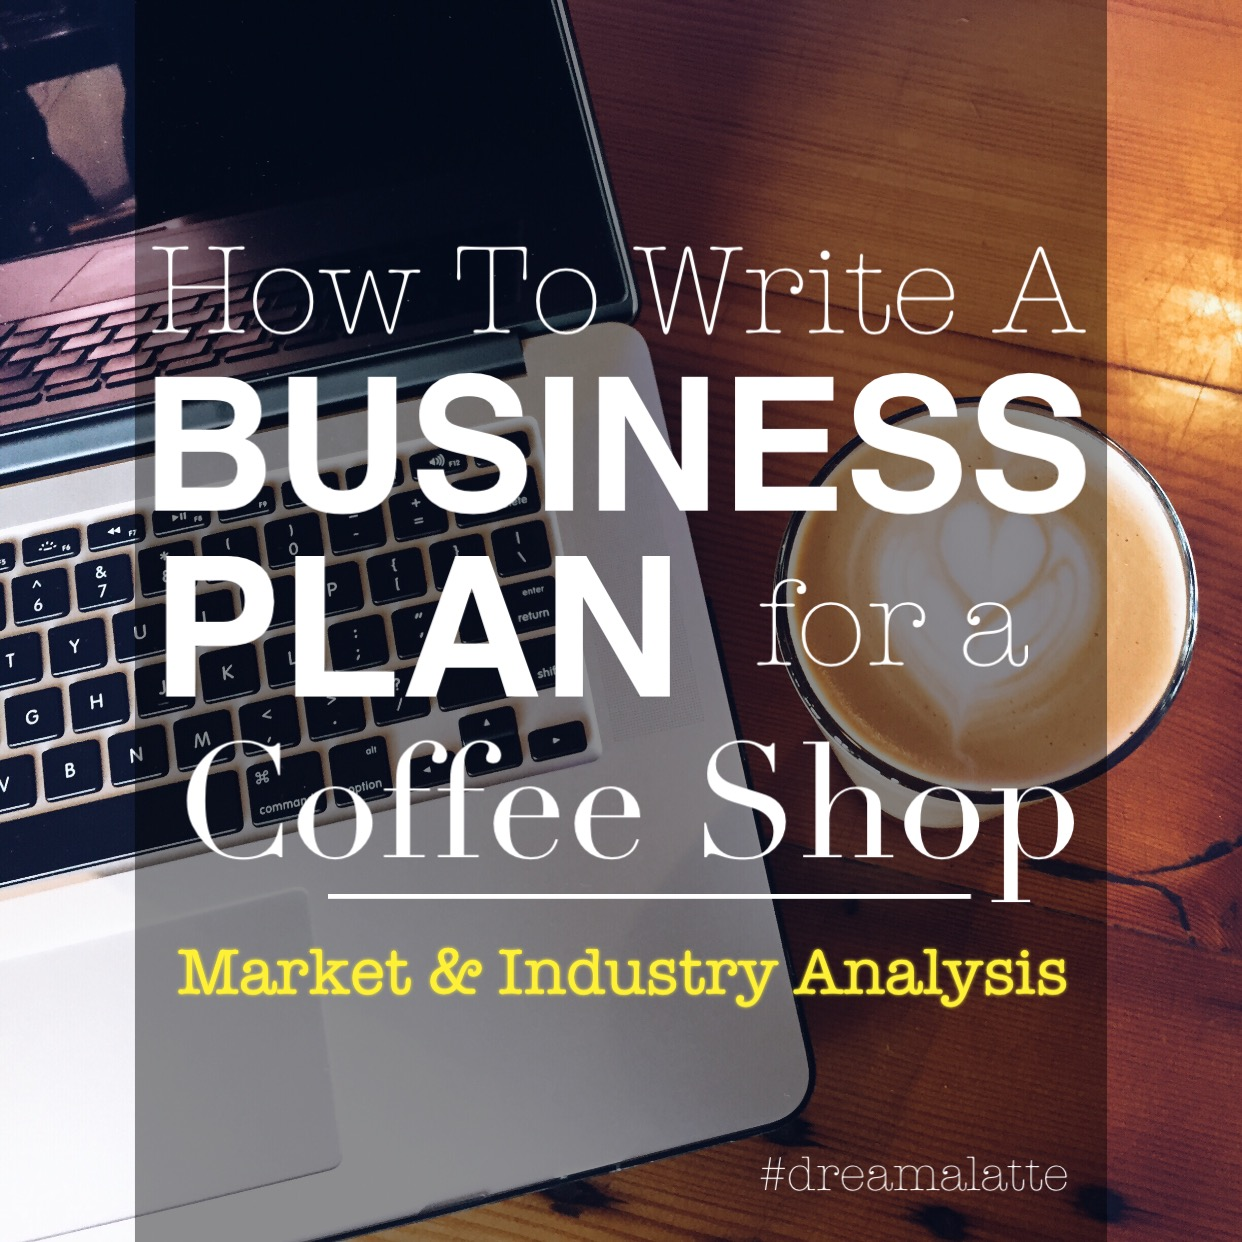 http://i0.wp.com/www.dreamalatte.com/wp-content/uploads/2015/08/business-plan-market-industry-analysis.jpg